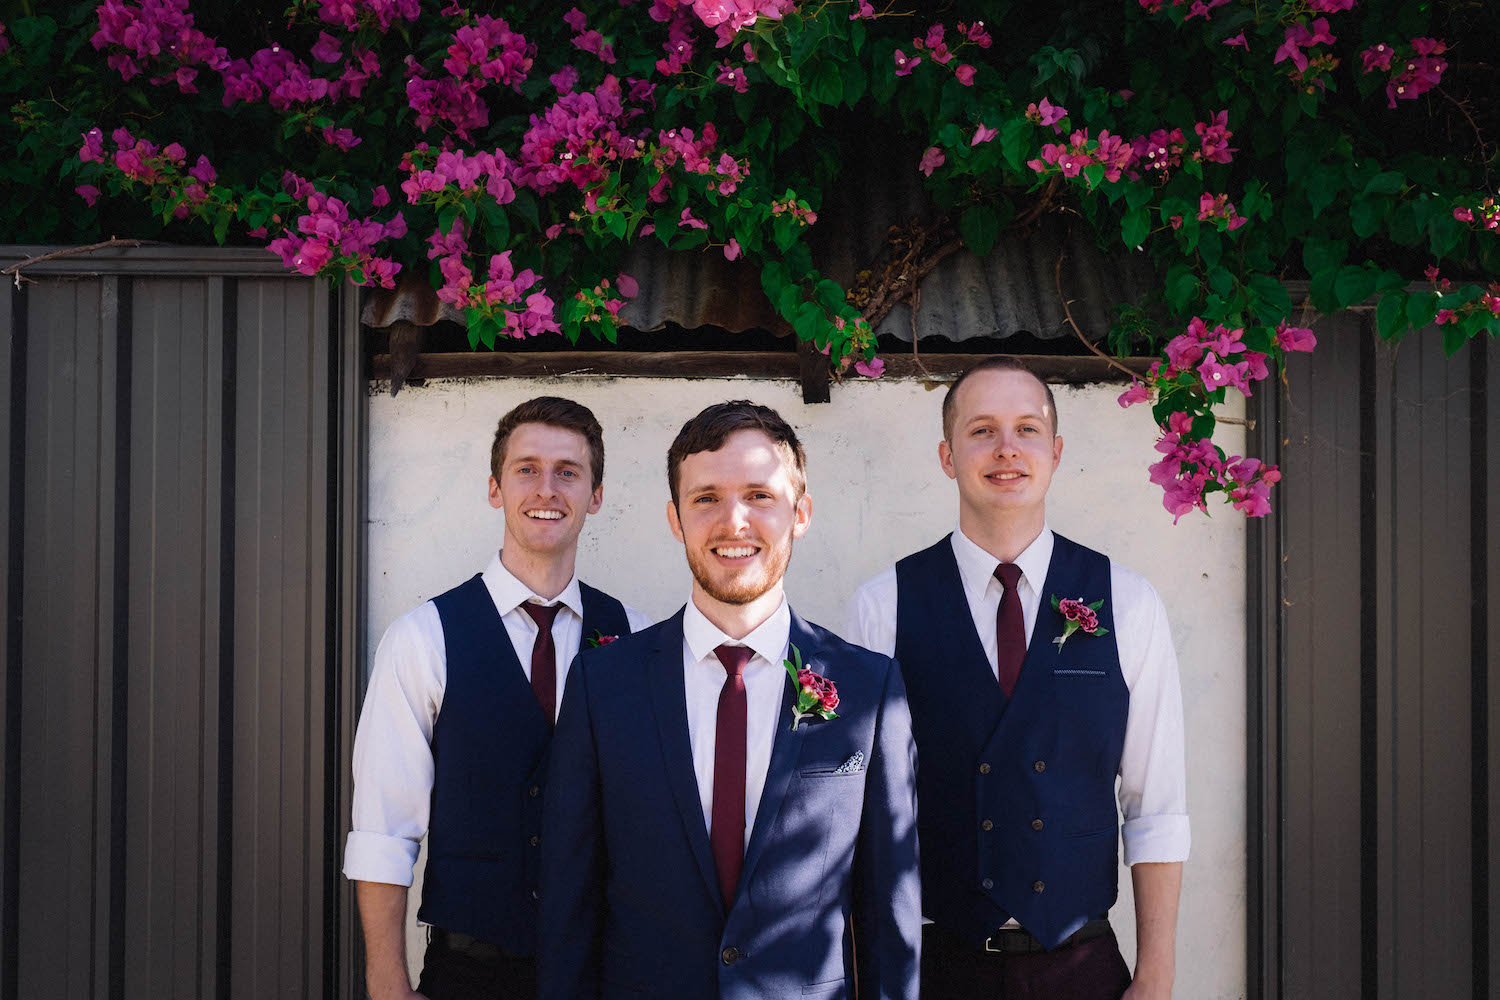 Jibb & his groomsmen in a suburban Subiaco laneway in Perth, Australia.